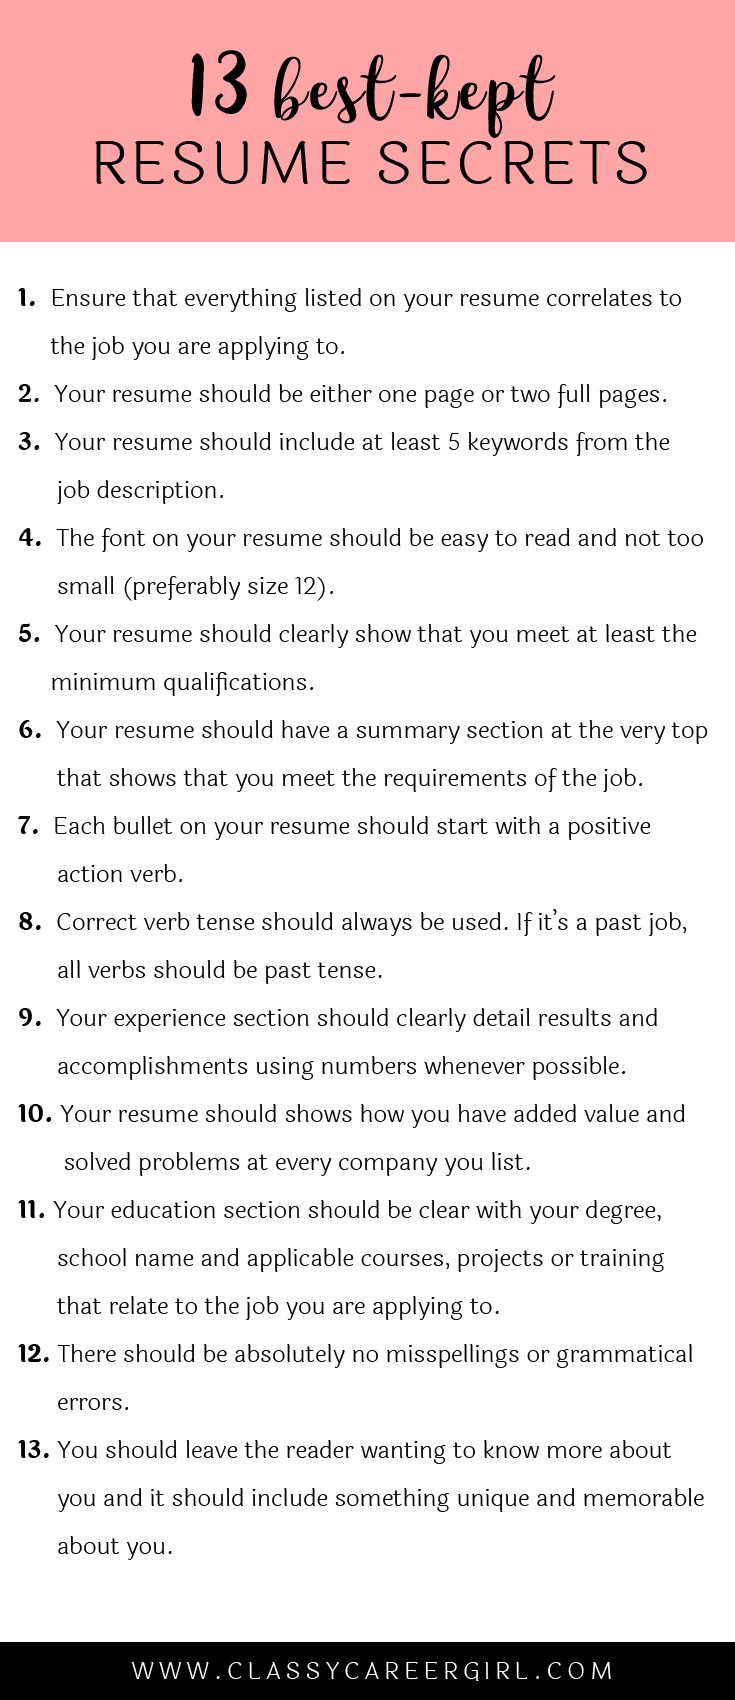 Opposenewapstandardsus  Ravishing  Ideas About Resume On Pinterest  Cv Format Resume Cv And  With Likable Some Hiring Managers Will Toss Your Resume Out If You Dont Know These  With Agreeable Retail Pharmacist Resume Also Best Skills To Put On Resume In Addition What Should I Include In My Resume And Posting Resume On Indeed As Well As Word  Resume Template Additionally What To Put For Objective On A Resume From Pinterestcom With Opposenewapstandardsus  Likable  Ideas About Resume On Pinterest  Cv Format Resume Cv And  With Agreeable Some Hiring Managers Will Toss Your Resume Out If You Dont Know These  And Ravishing Retail Pharmacist Resume Also Best Skills To Put On Resume In Addition What Should I Include In My Resume From Pinterestcom